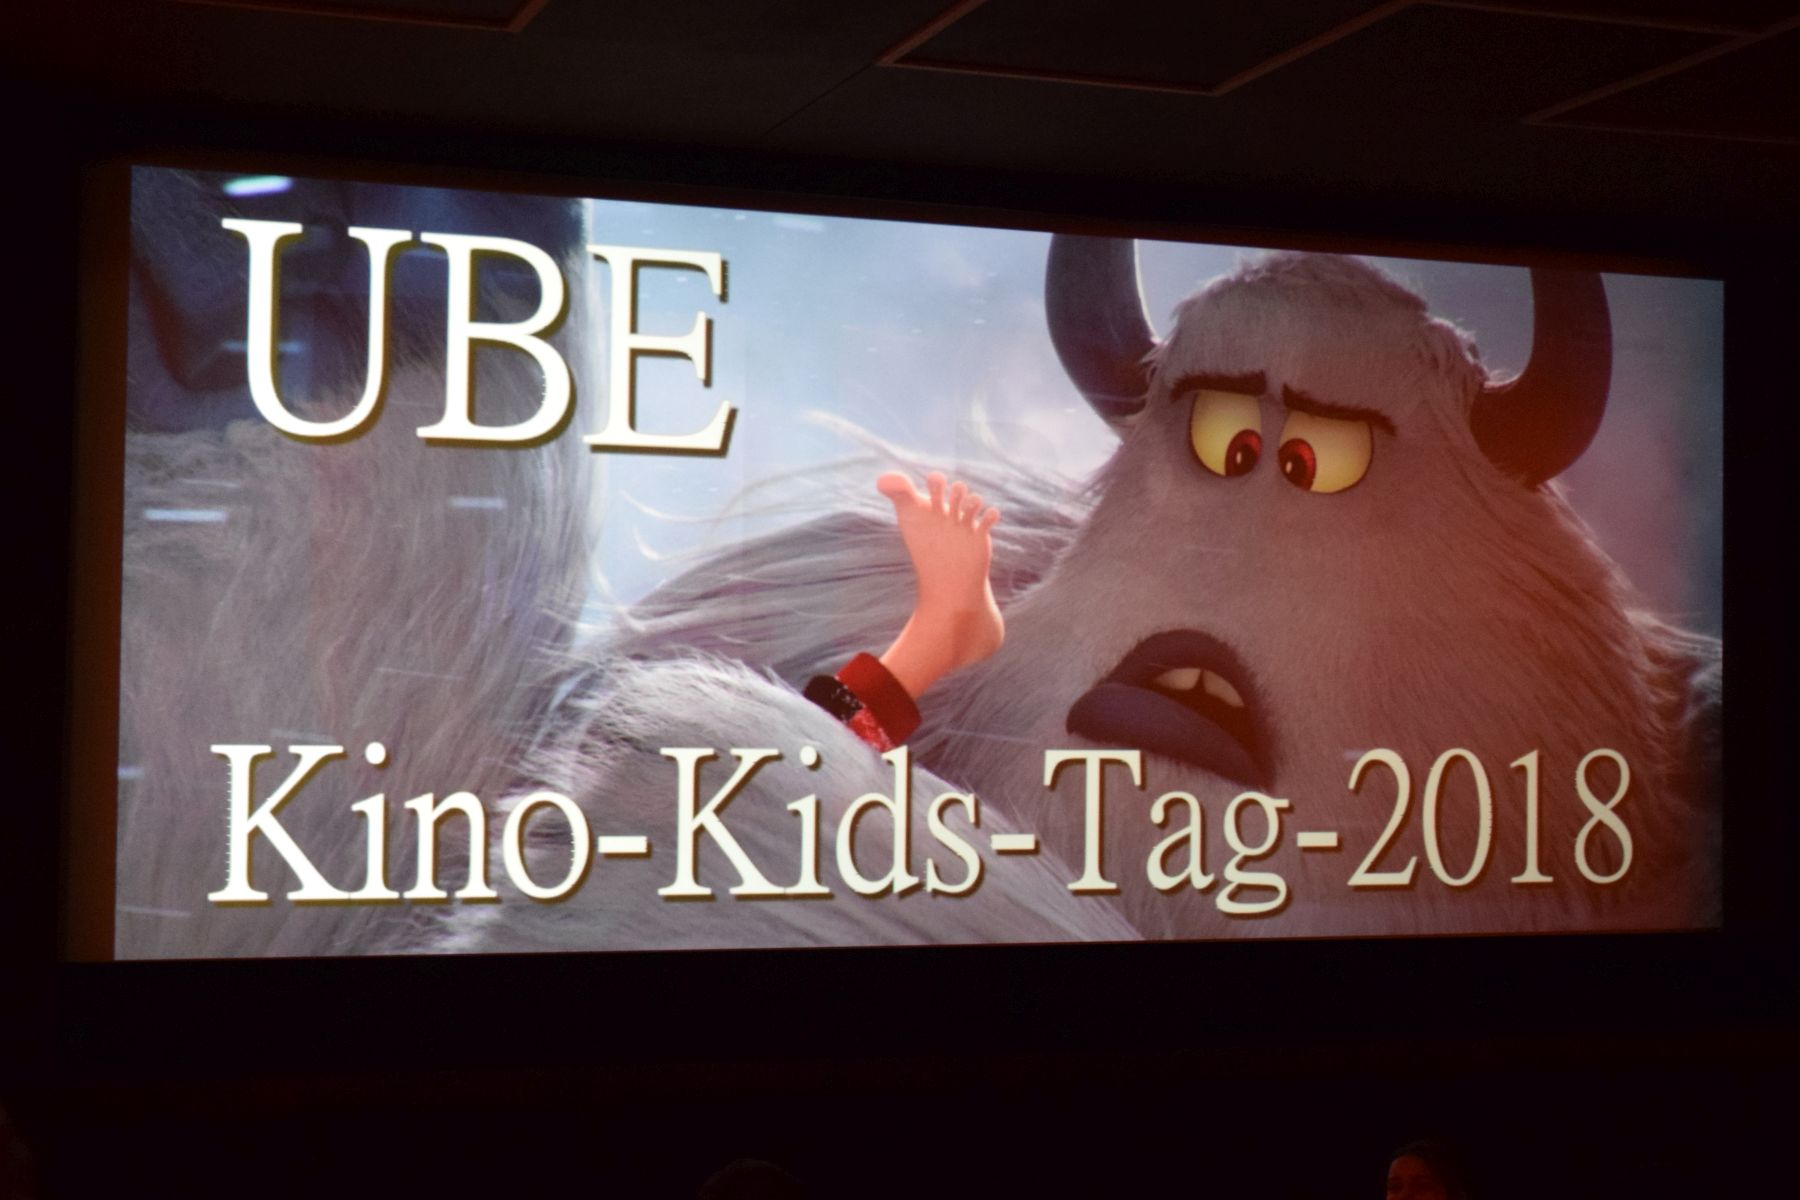 Kino Kids Tag 2018